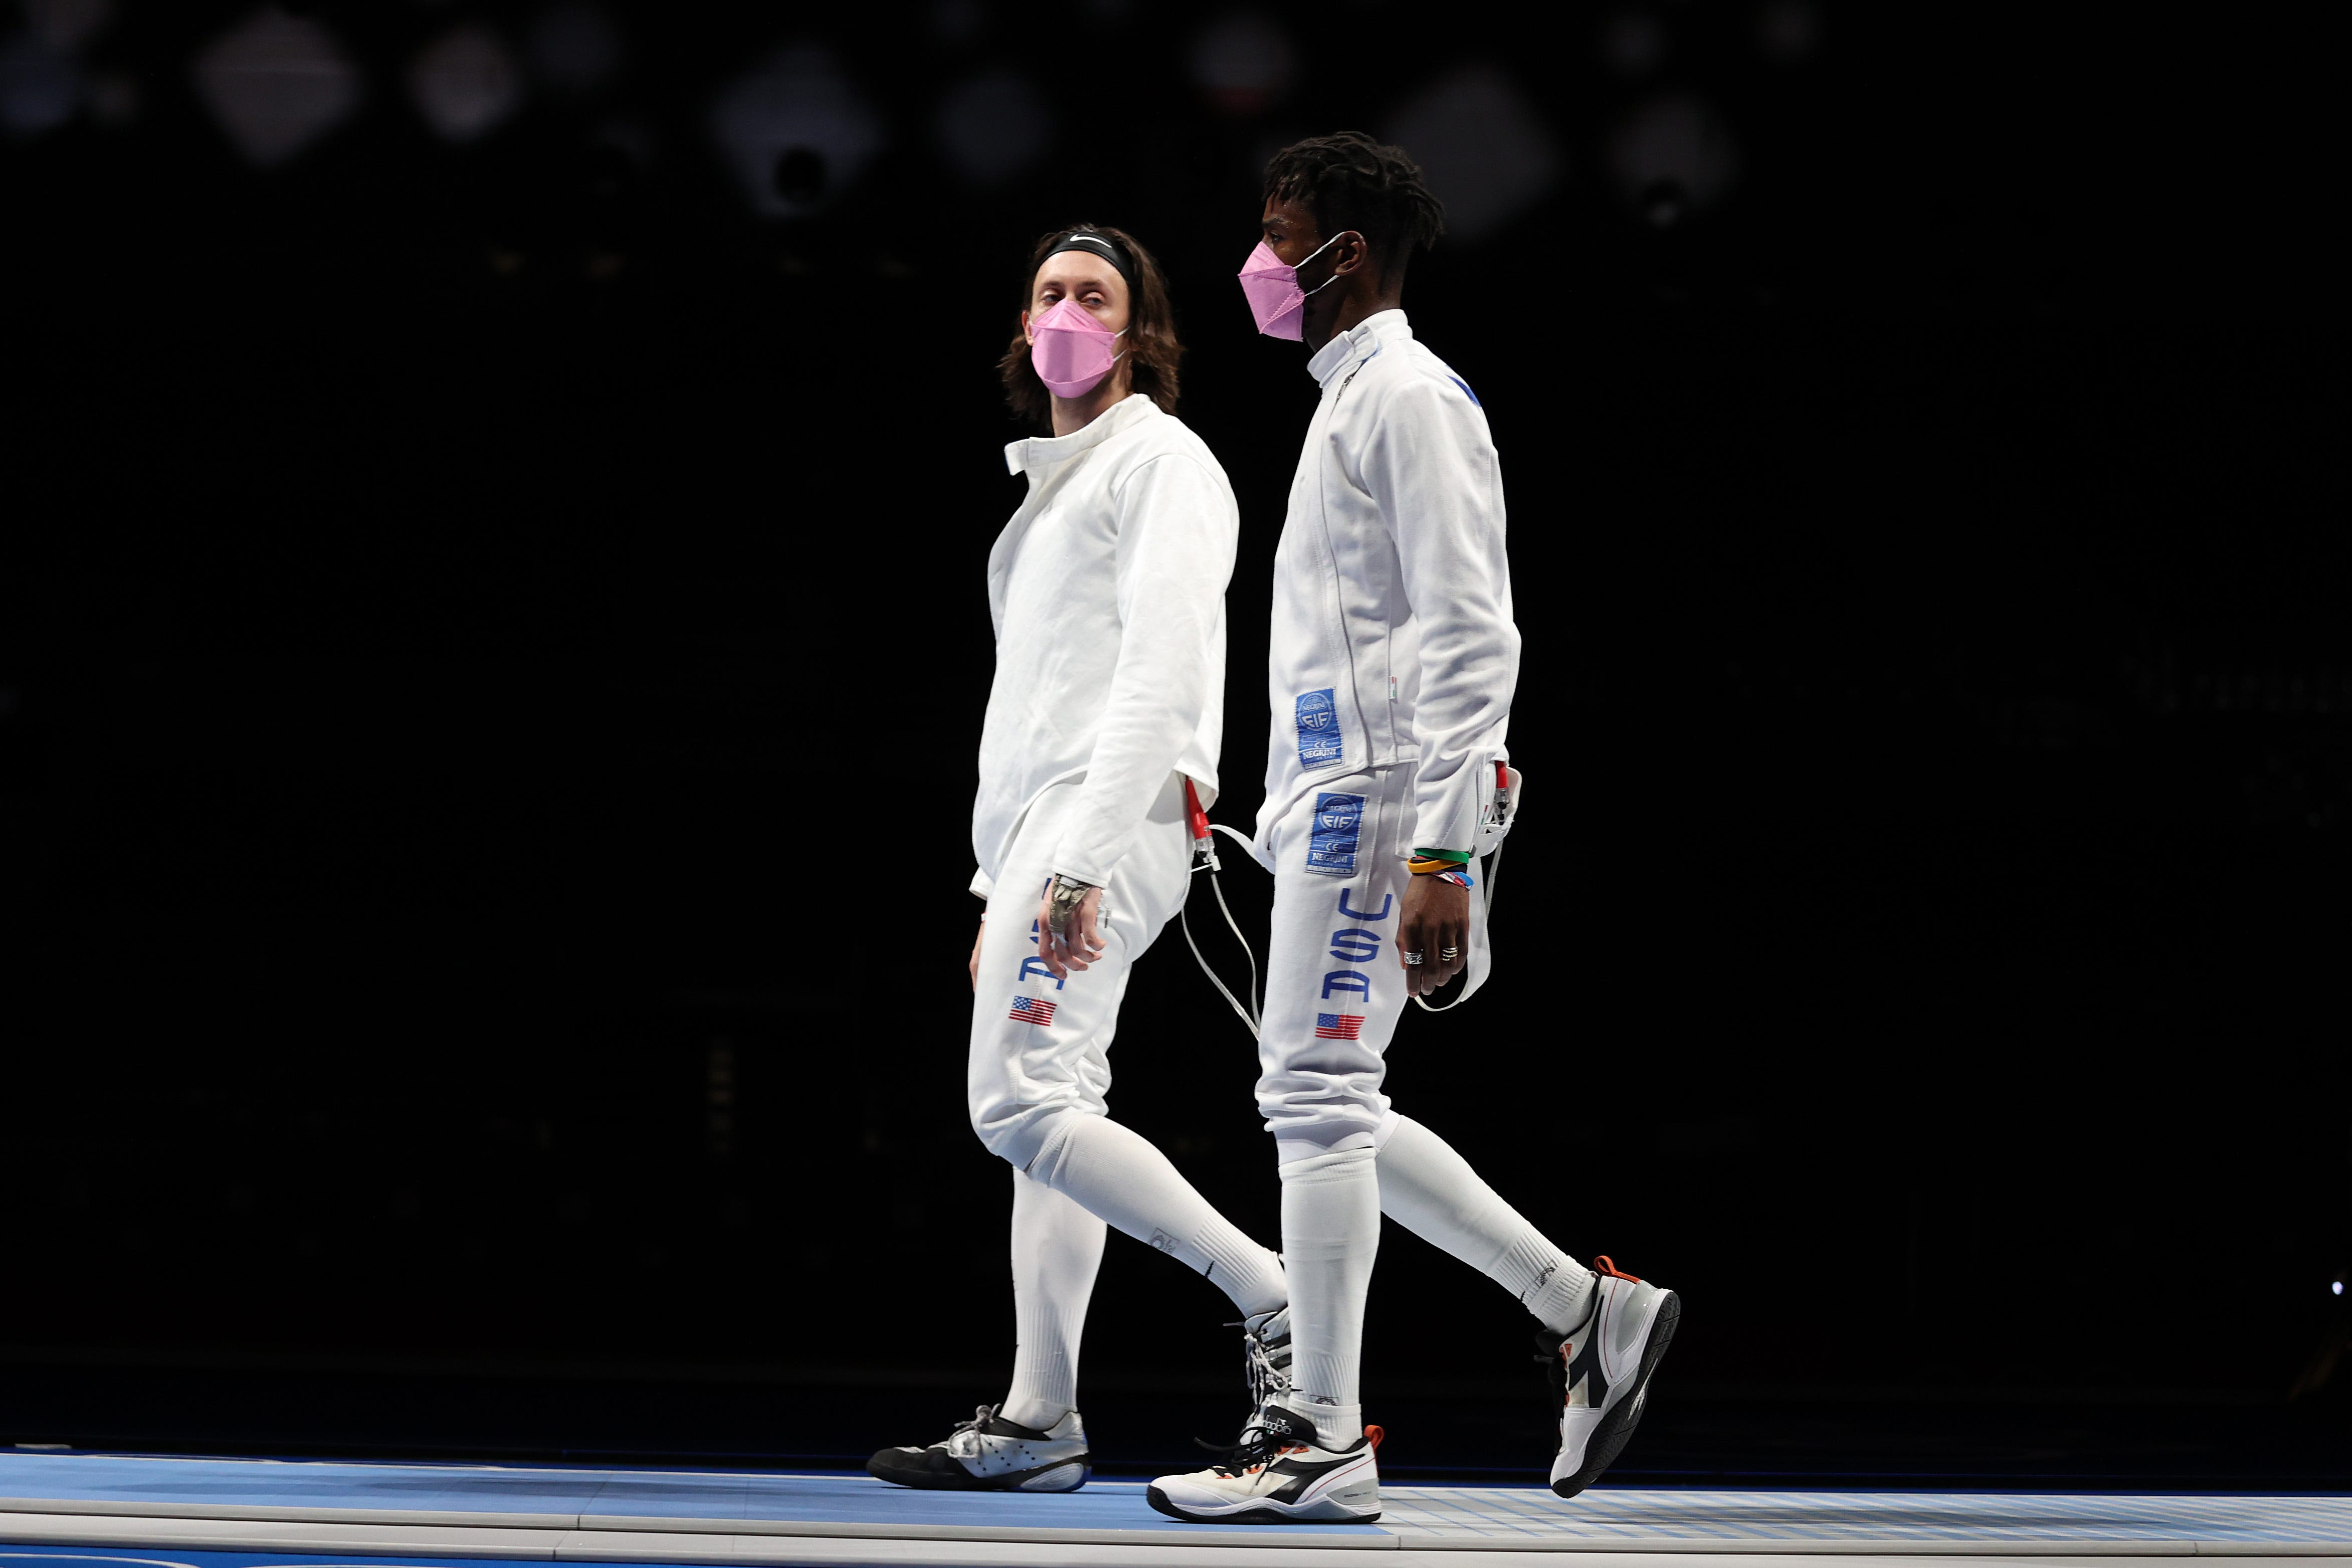 US fencer Alen Hadzic confronts teammates wearing pink masks in apparent protest of his inclusion on team